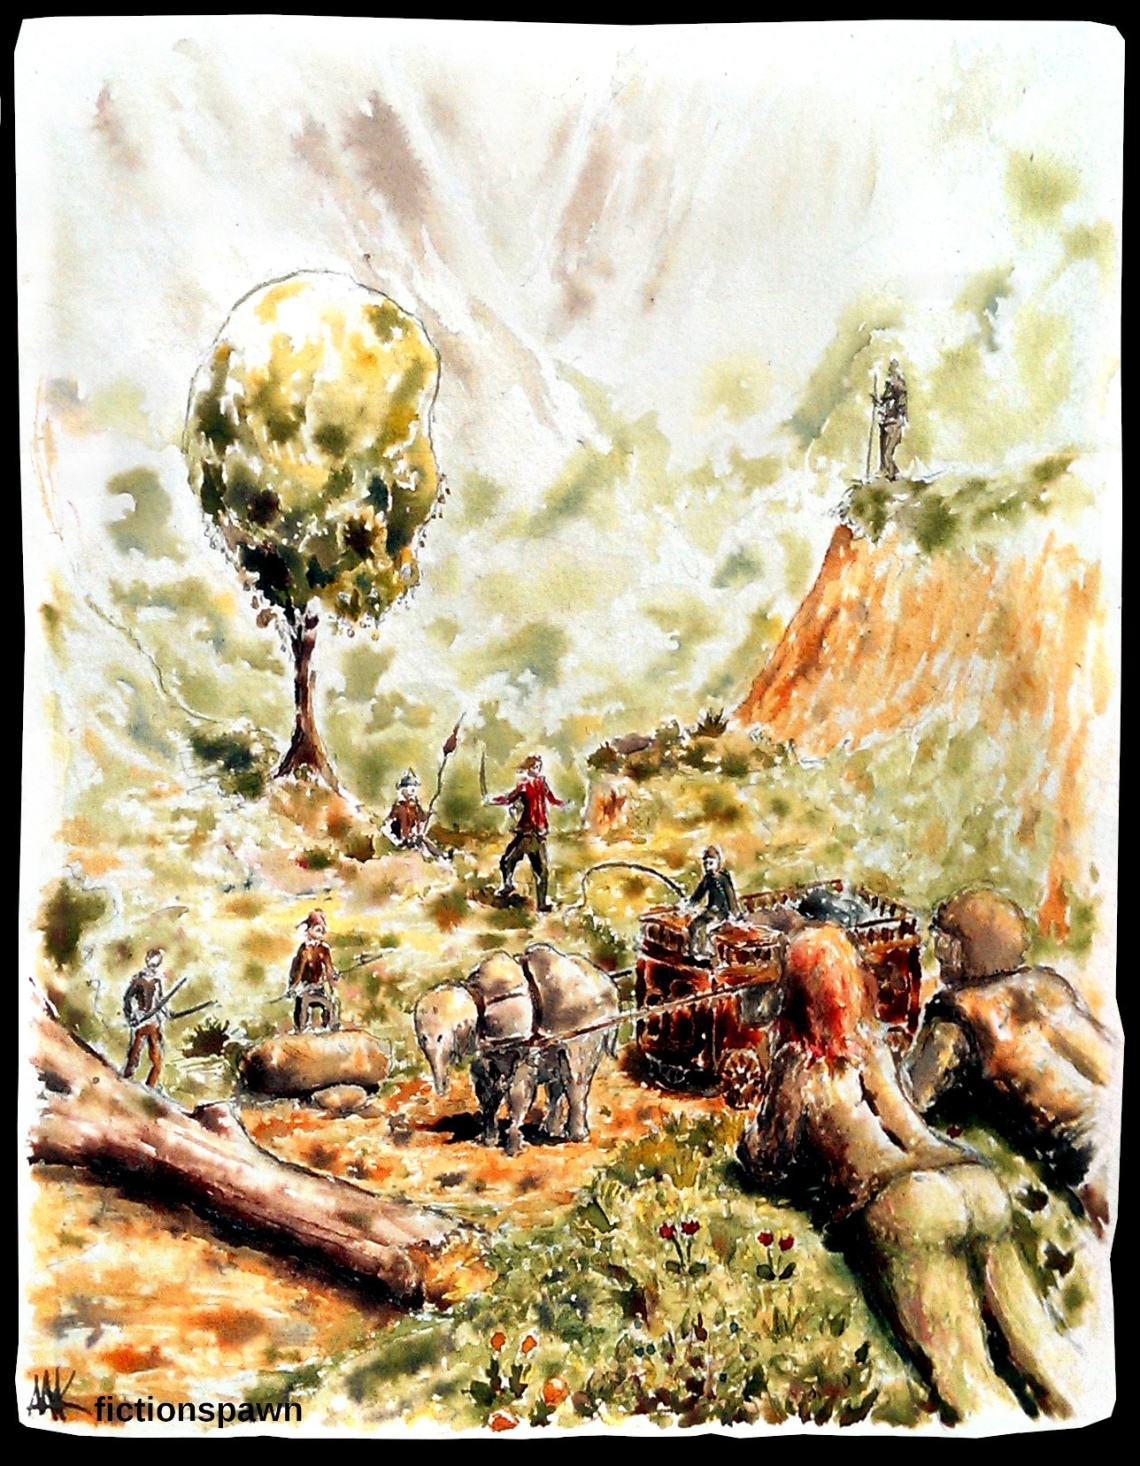 Bandits attacking a transport Aak fictionspawn ink illustration